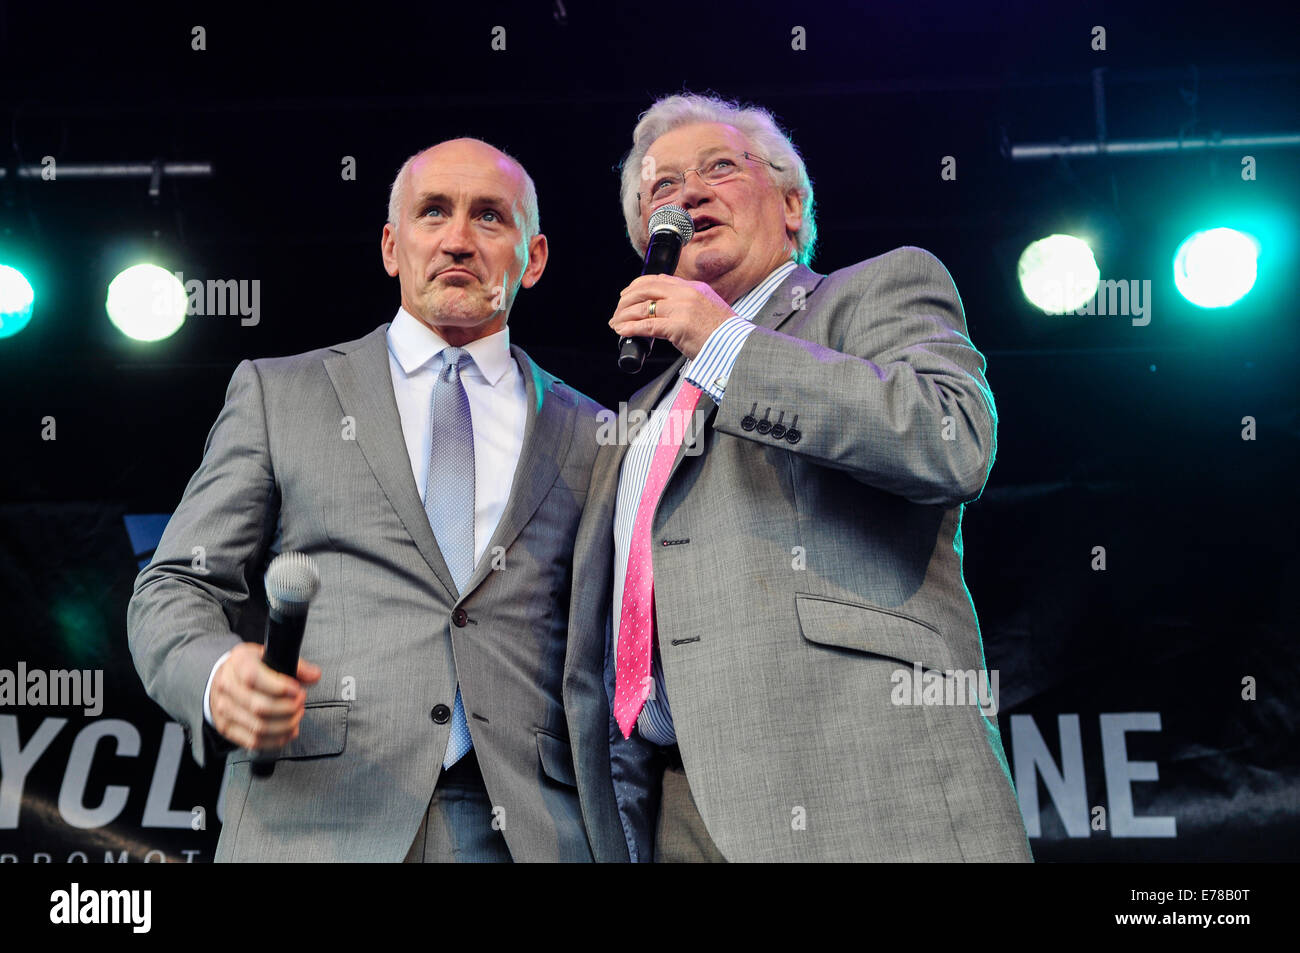 Belfast, Northern Ireland. 9 Sep 2014 - Barry McGuigan is interviewed by Jackie Fullerton at the civic reception - Stock Image